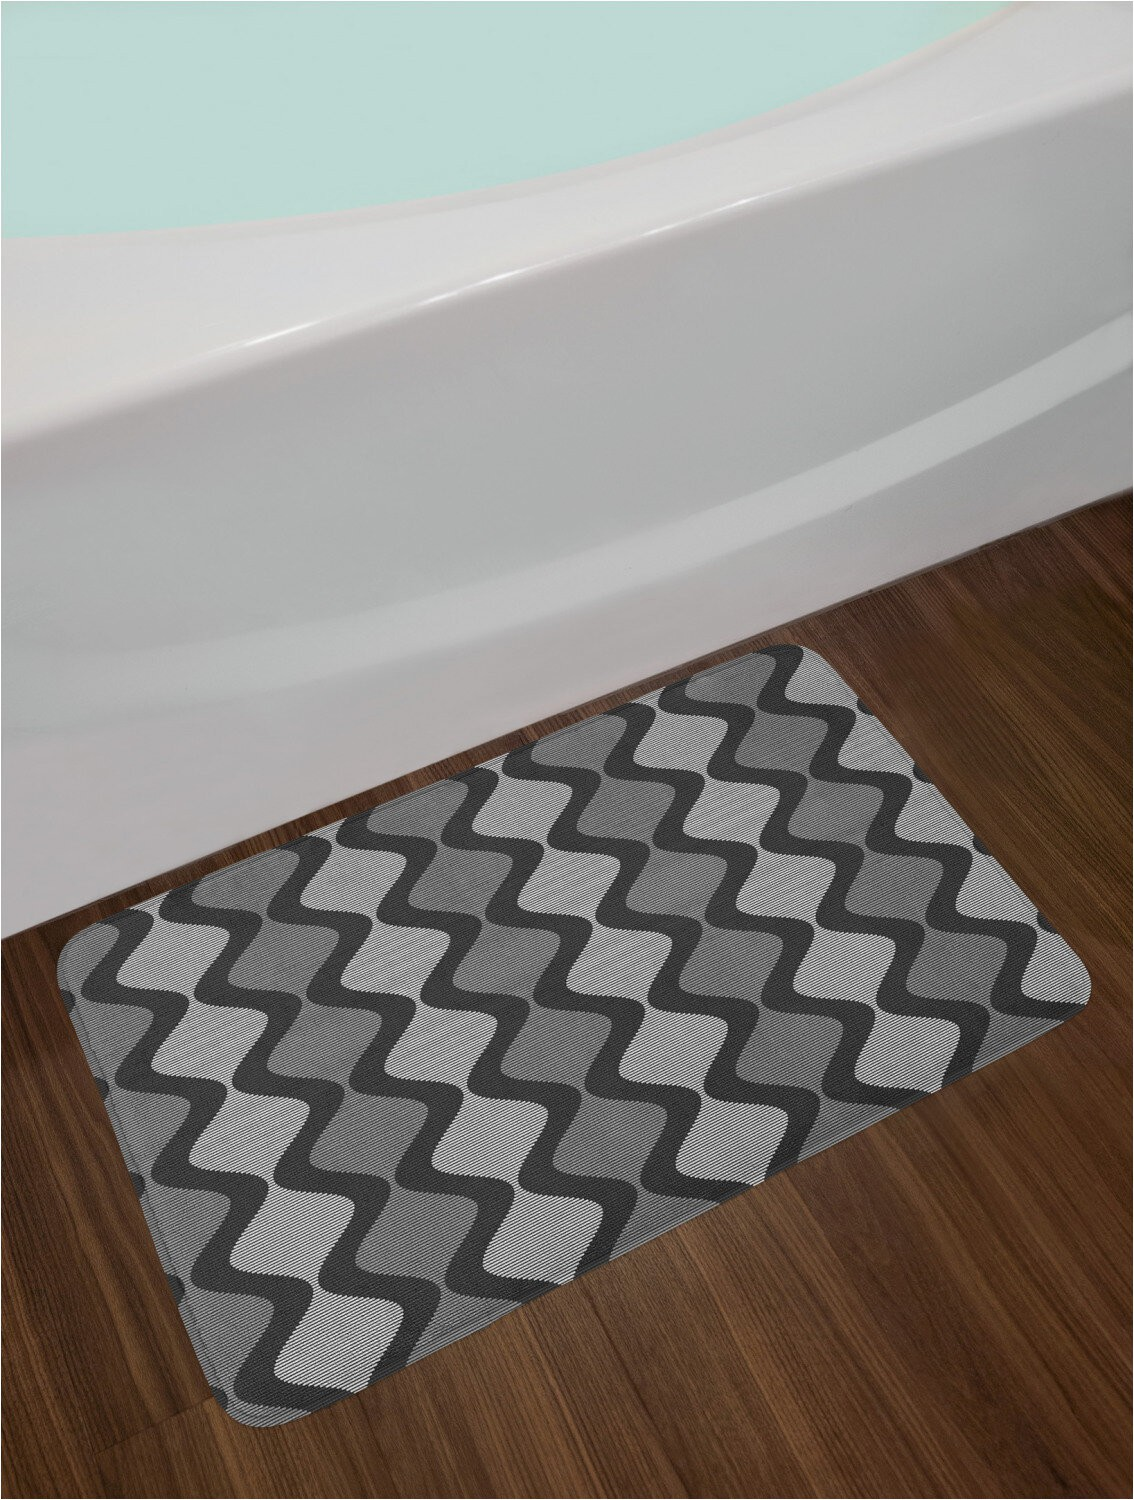 22 inch x 60 inch Extra Long Bathroom Rug Soft and